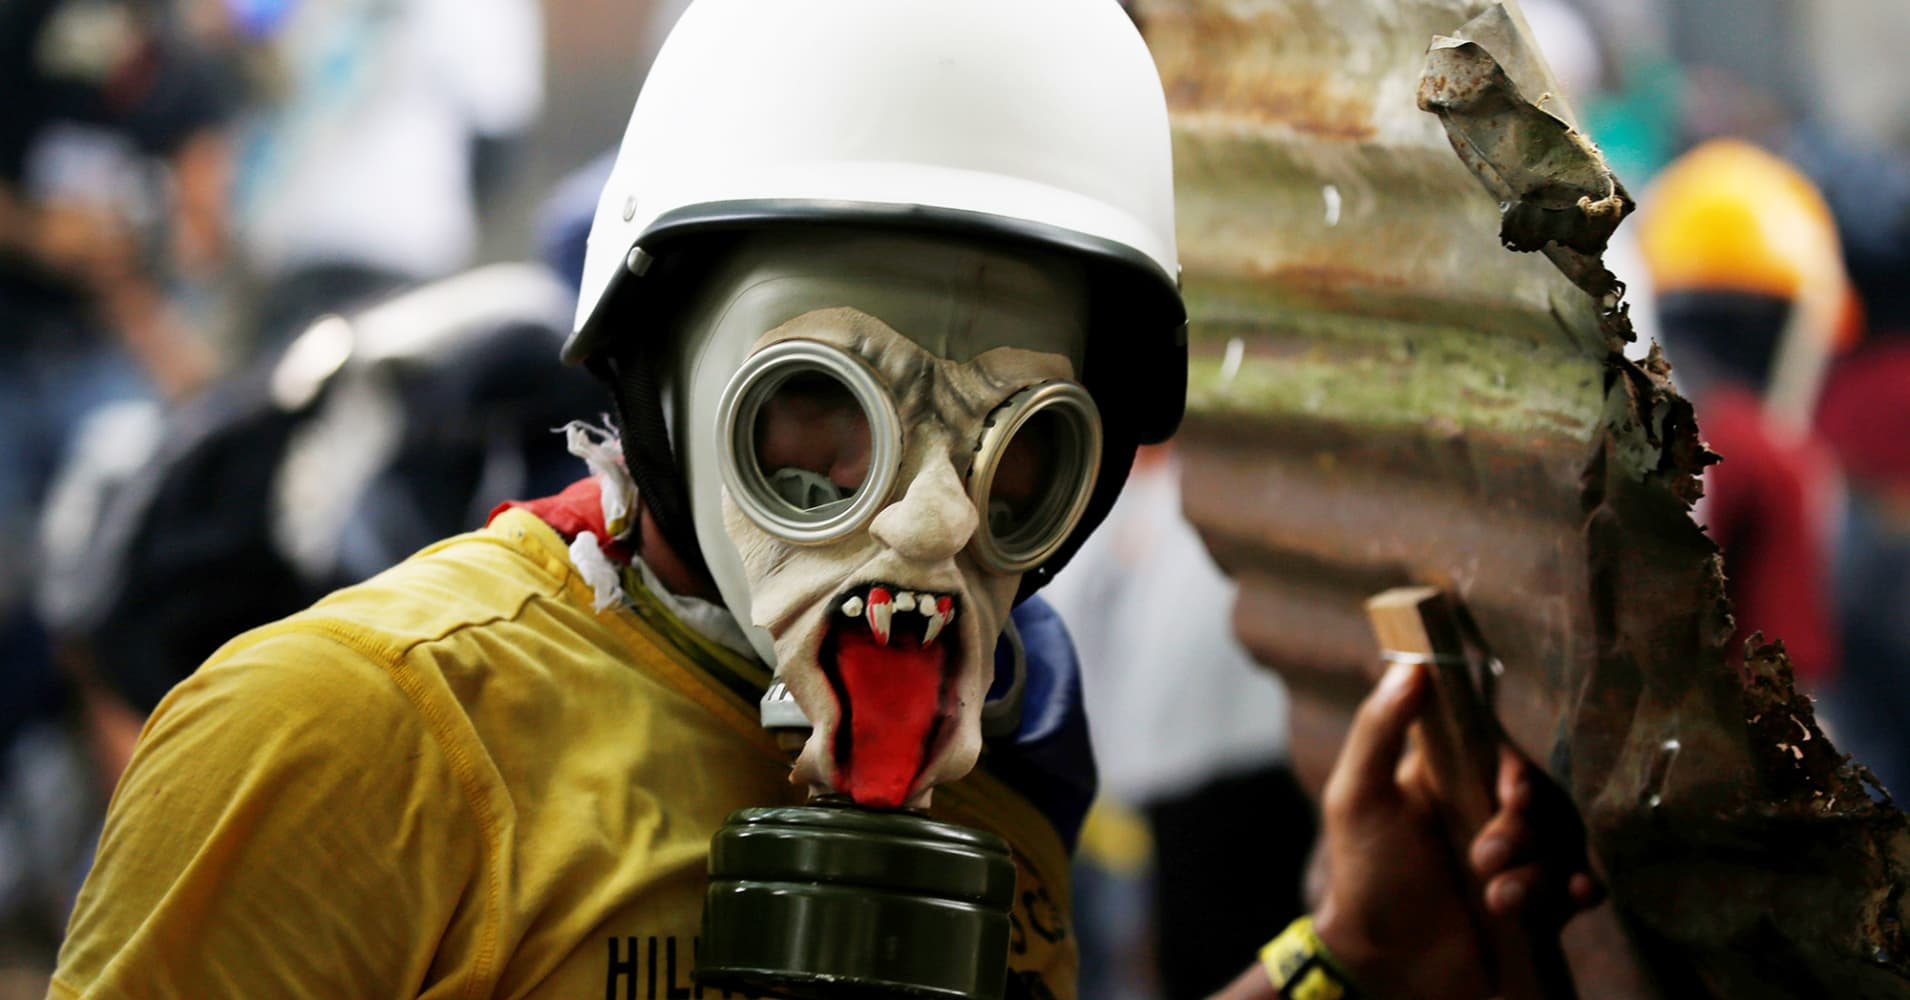 A demonstrator wears a gas mask during a rally against Venezuela's President Nicolas Maduro in Caracas, Venezuela May 1, 2017.